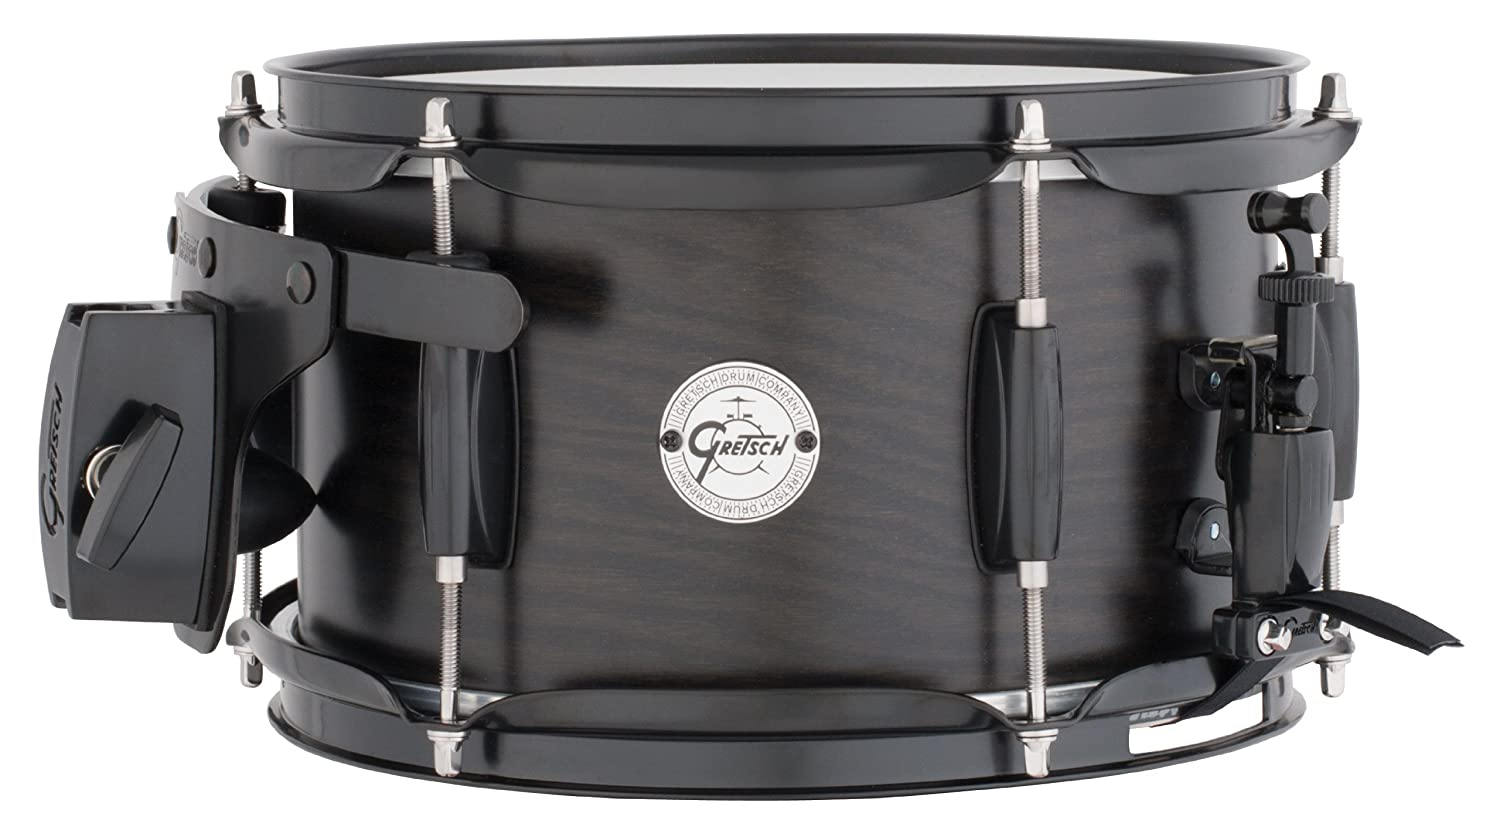 Gretsch Drums Silver Series S1-0610-ASHT 10-Inch Snare Drum, Satin